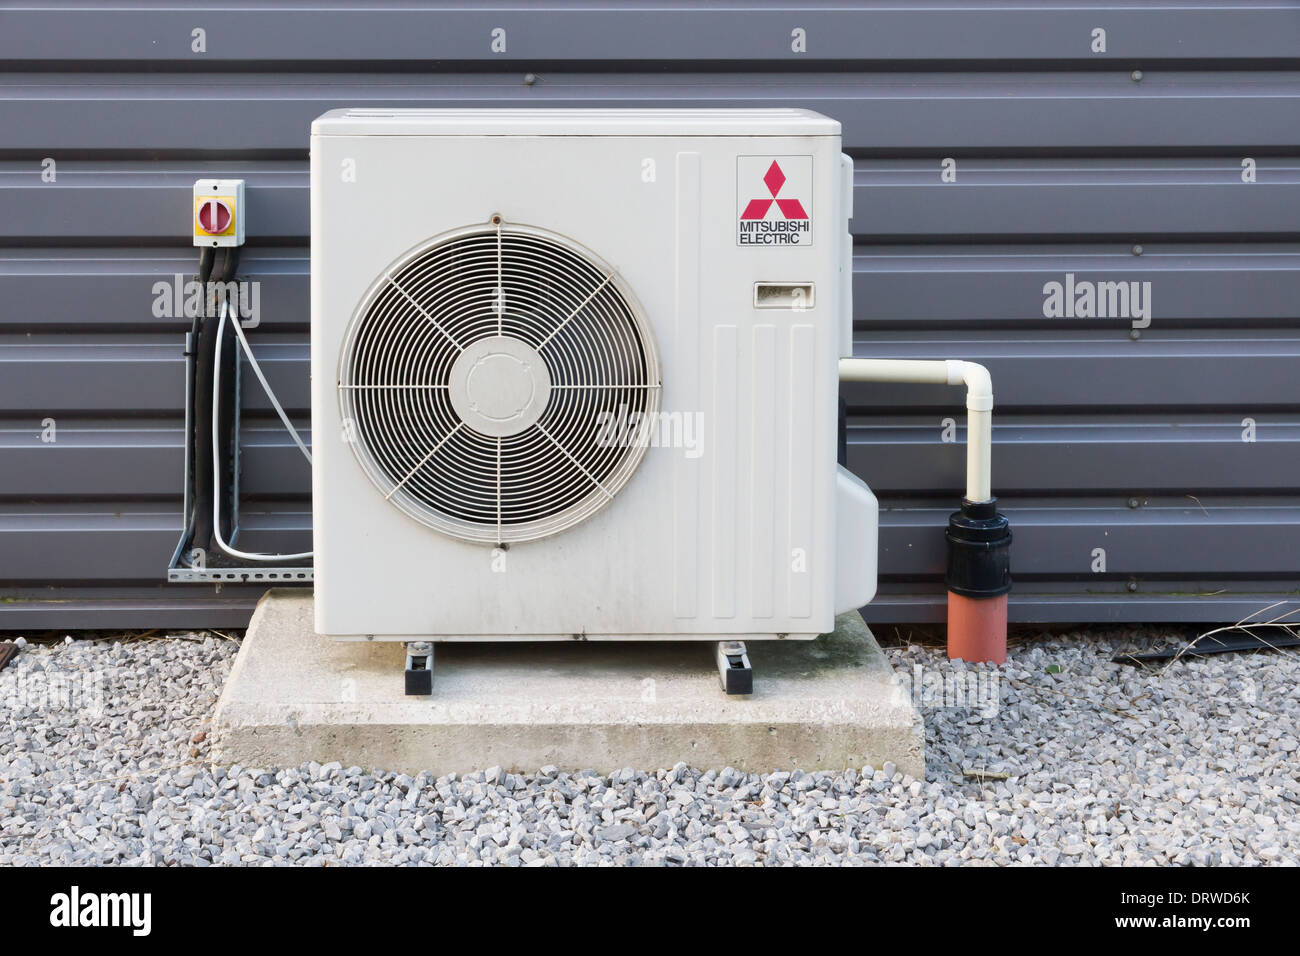 air conditioning unit - Air Conditioning Units